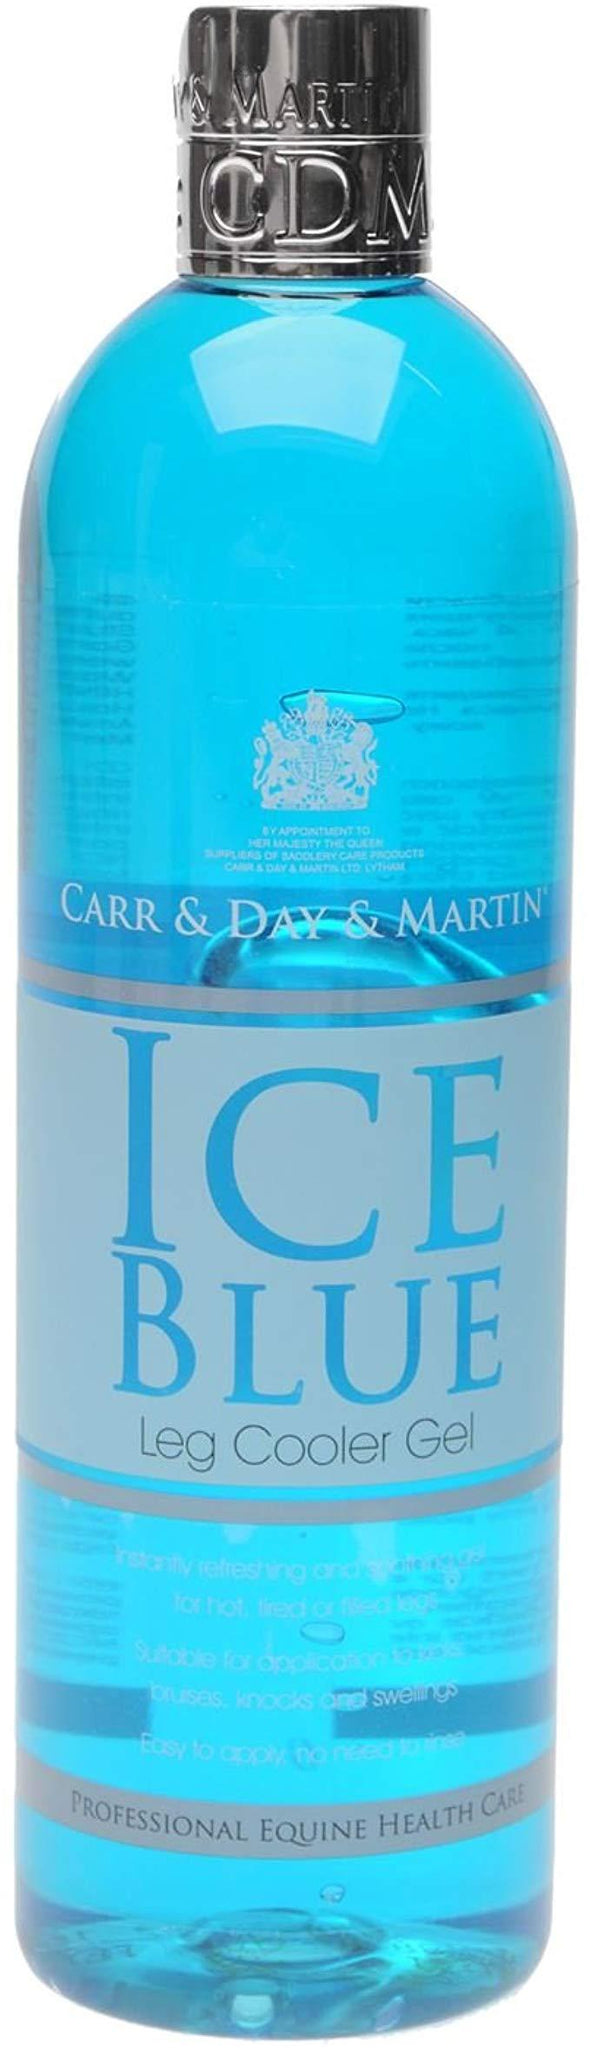 ICE BLUE LEG COOLER 500ML